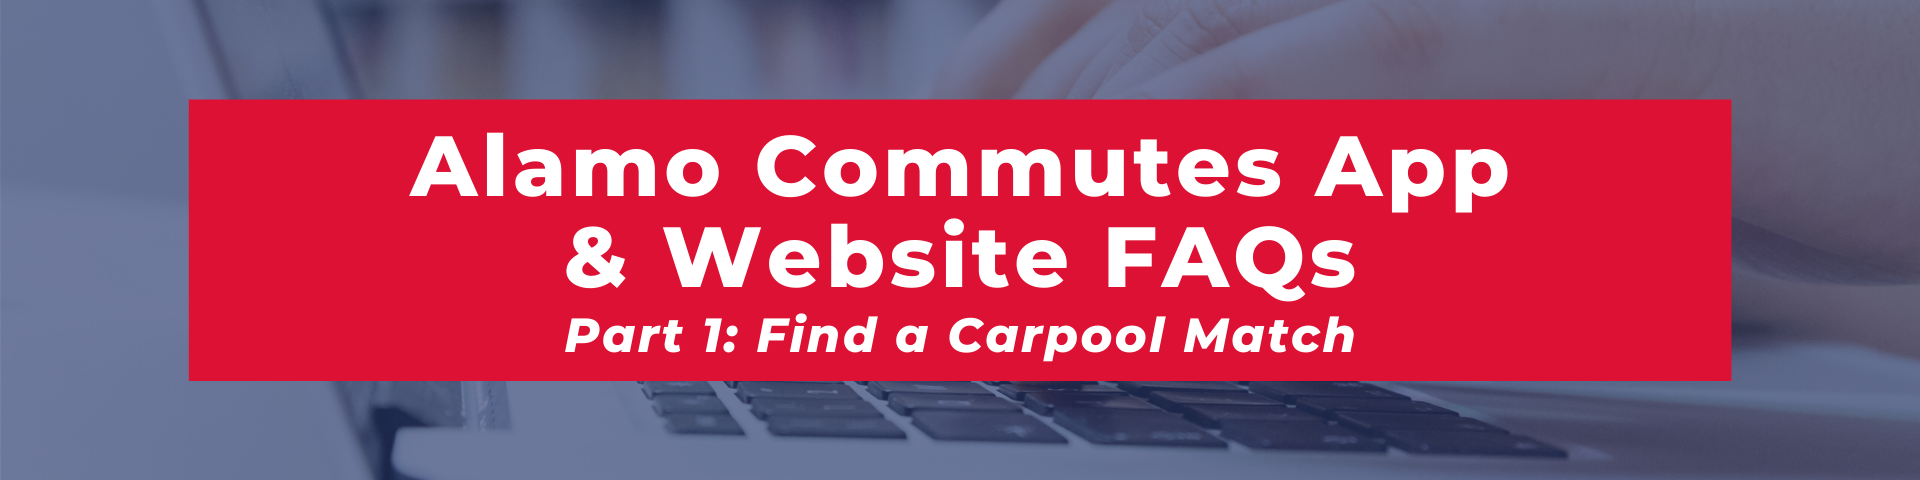 blog title banner image:  Alamo Commutes App and Website frequently asked questions; Part 1: Find a carpool match